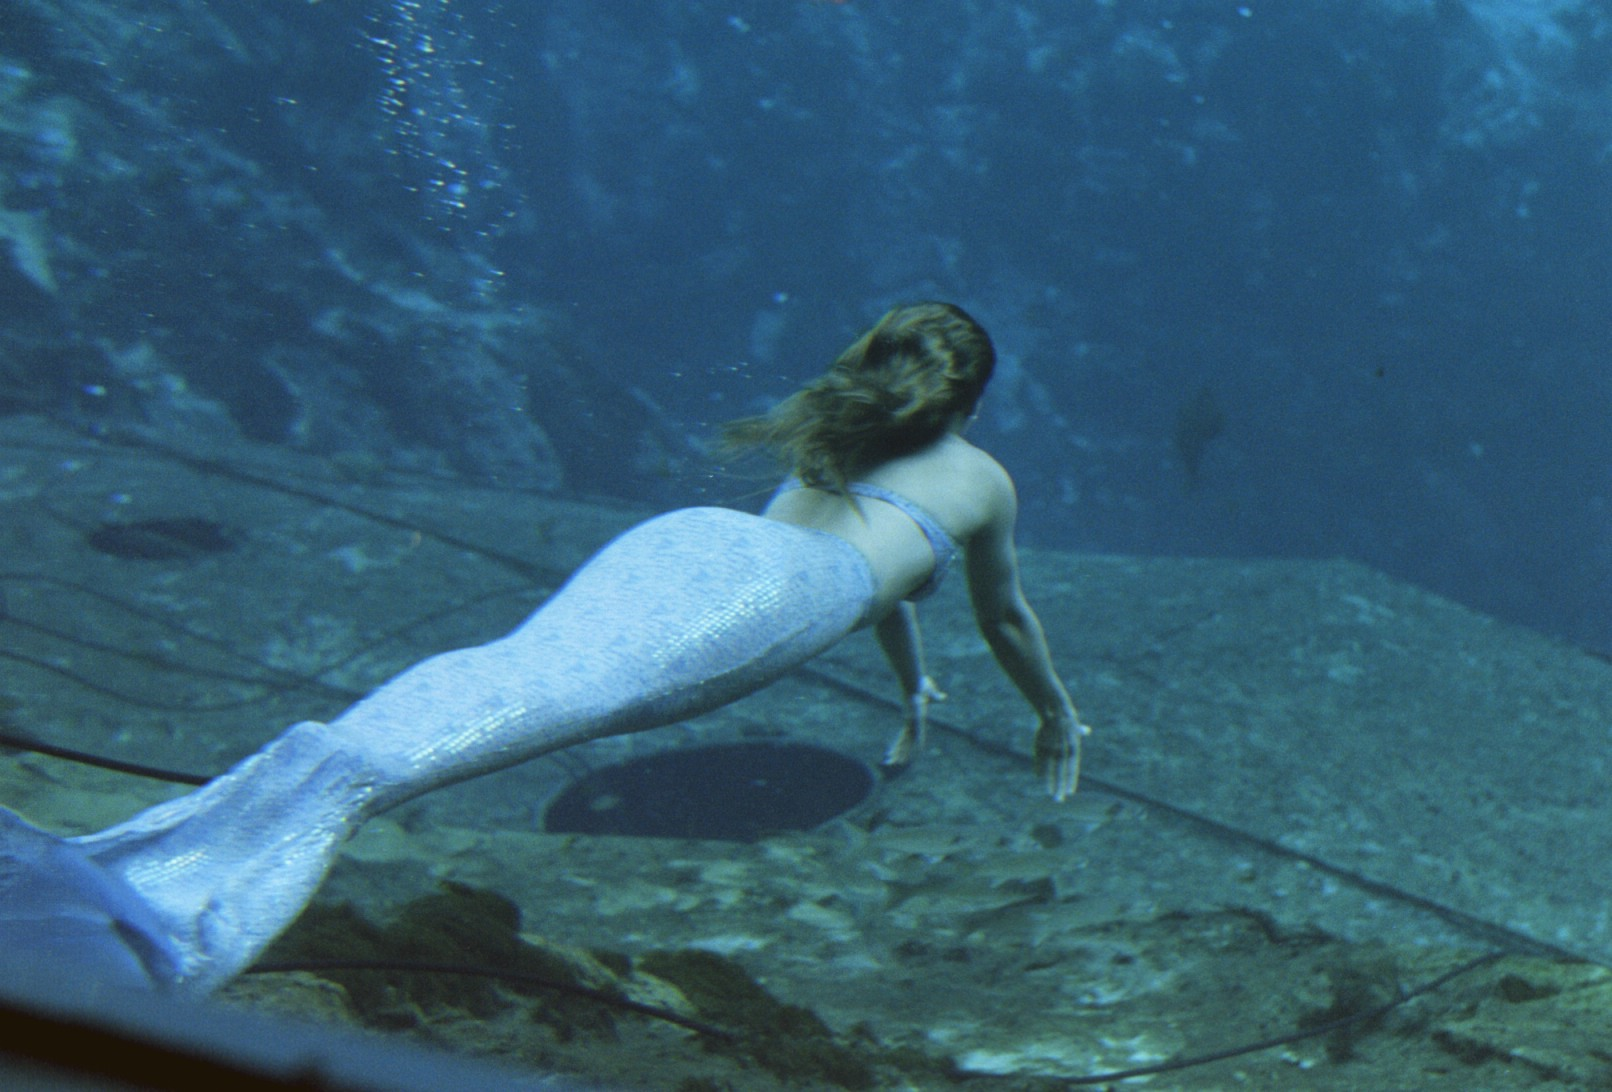 mermaid, ariel mermaid, mermaid pictures,mermaid picture, mermaid images, mermaids, are mermaids real, mermaid caught on tape  -39